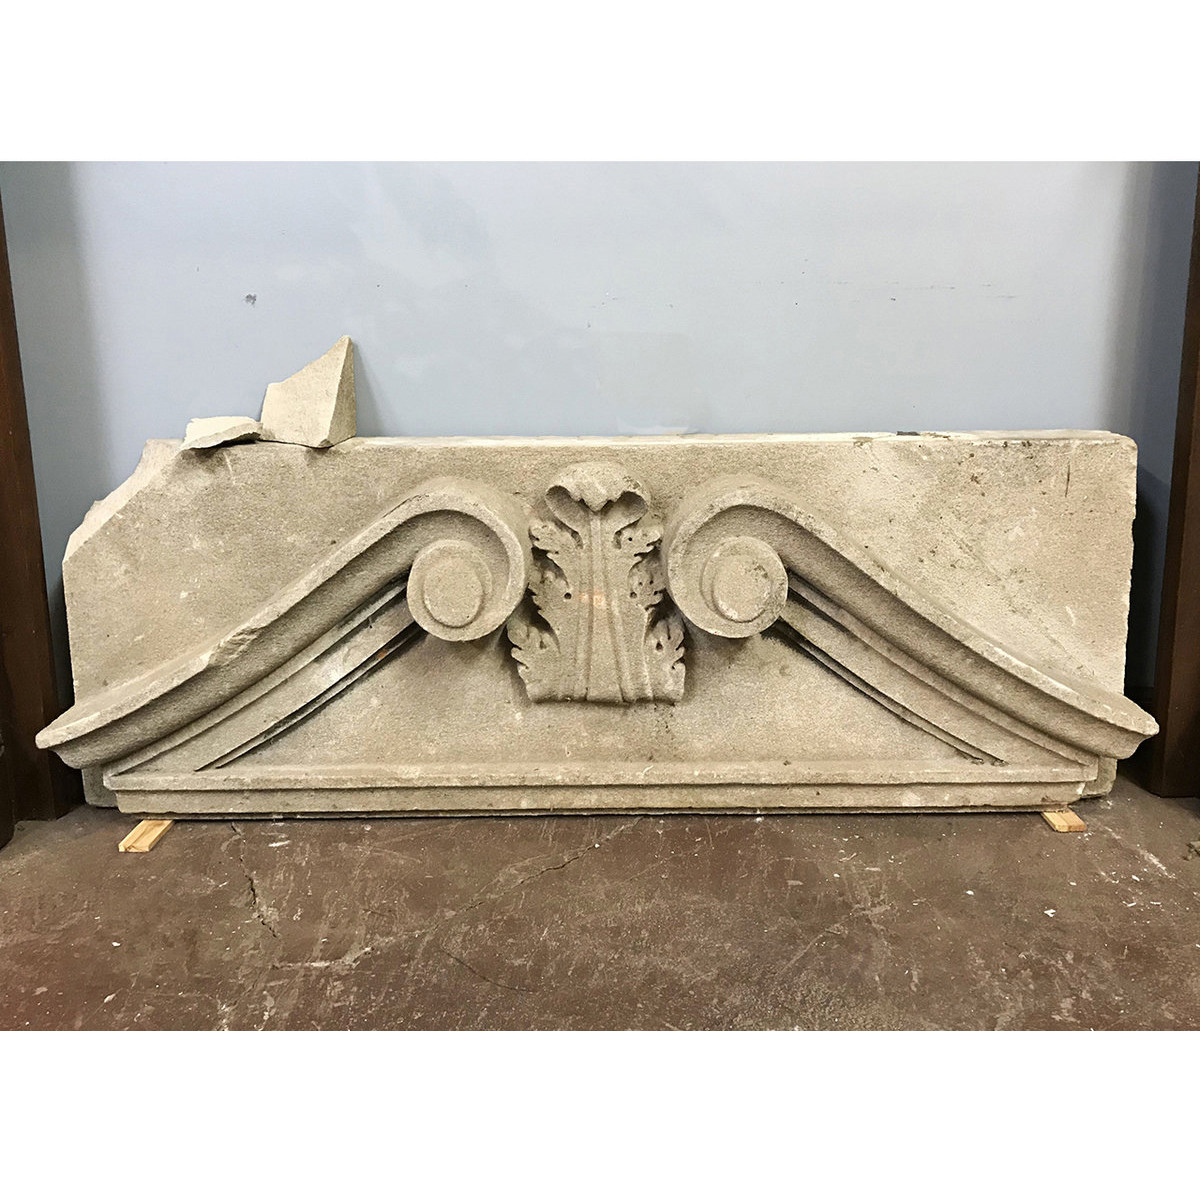 907176 - Salvaged Antique Carved Stone Building Pediment